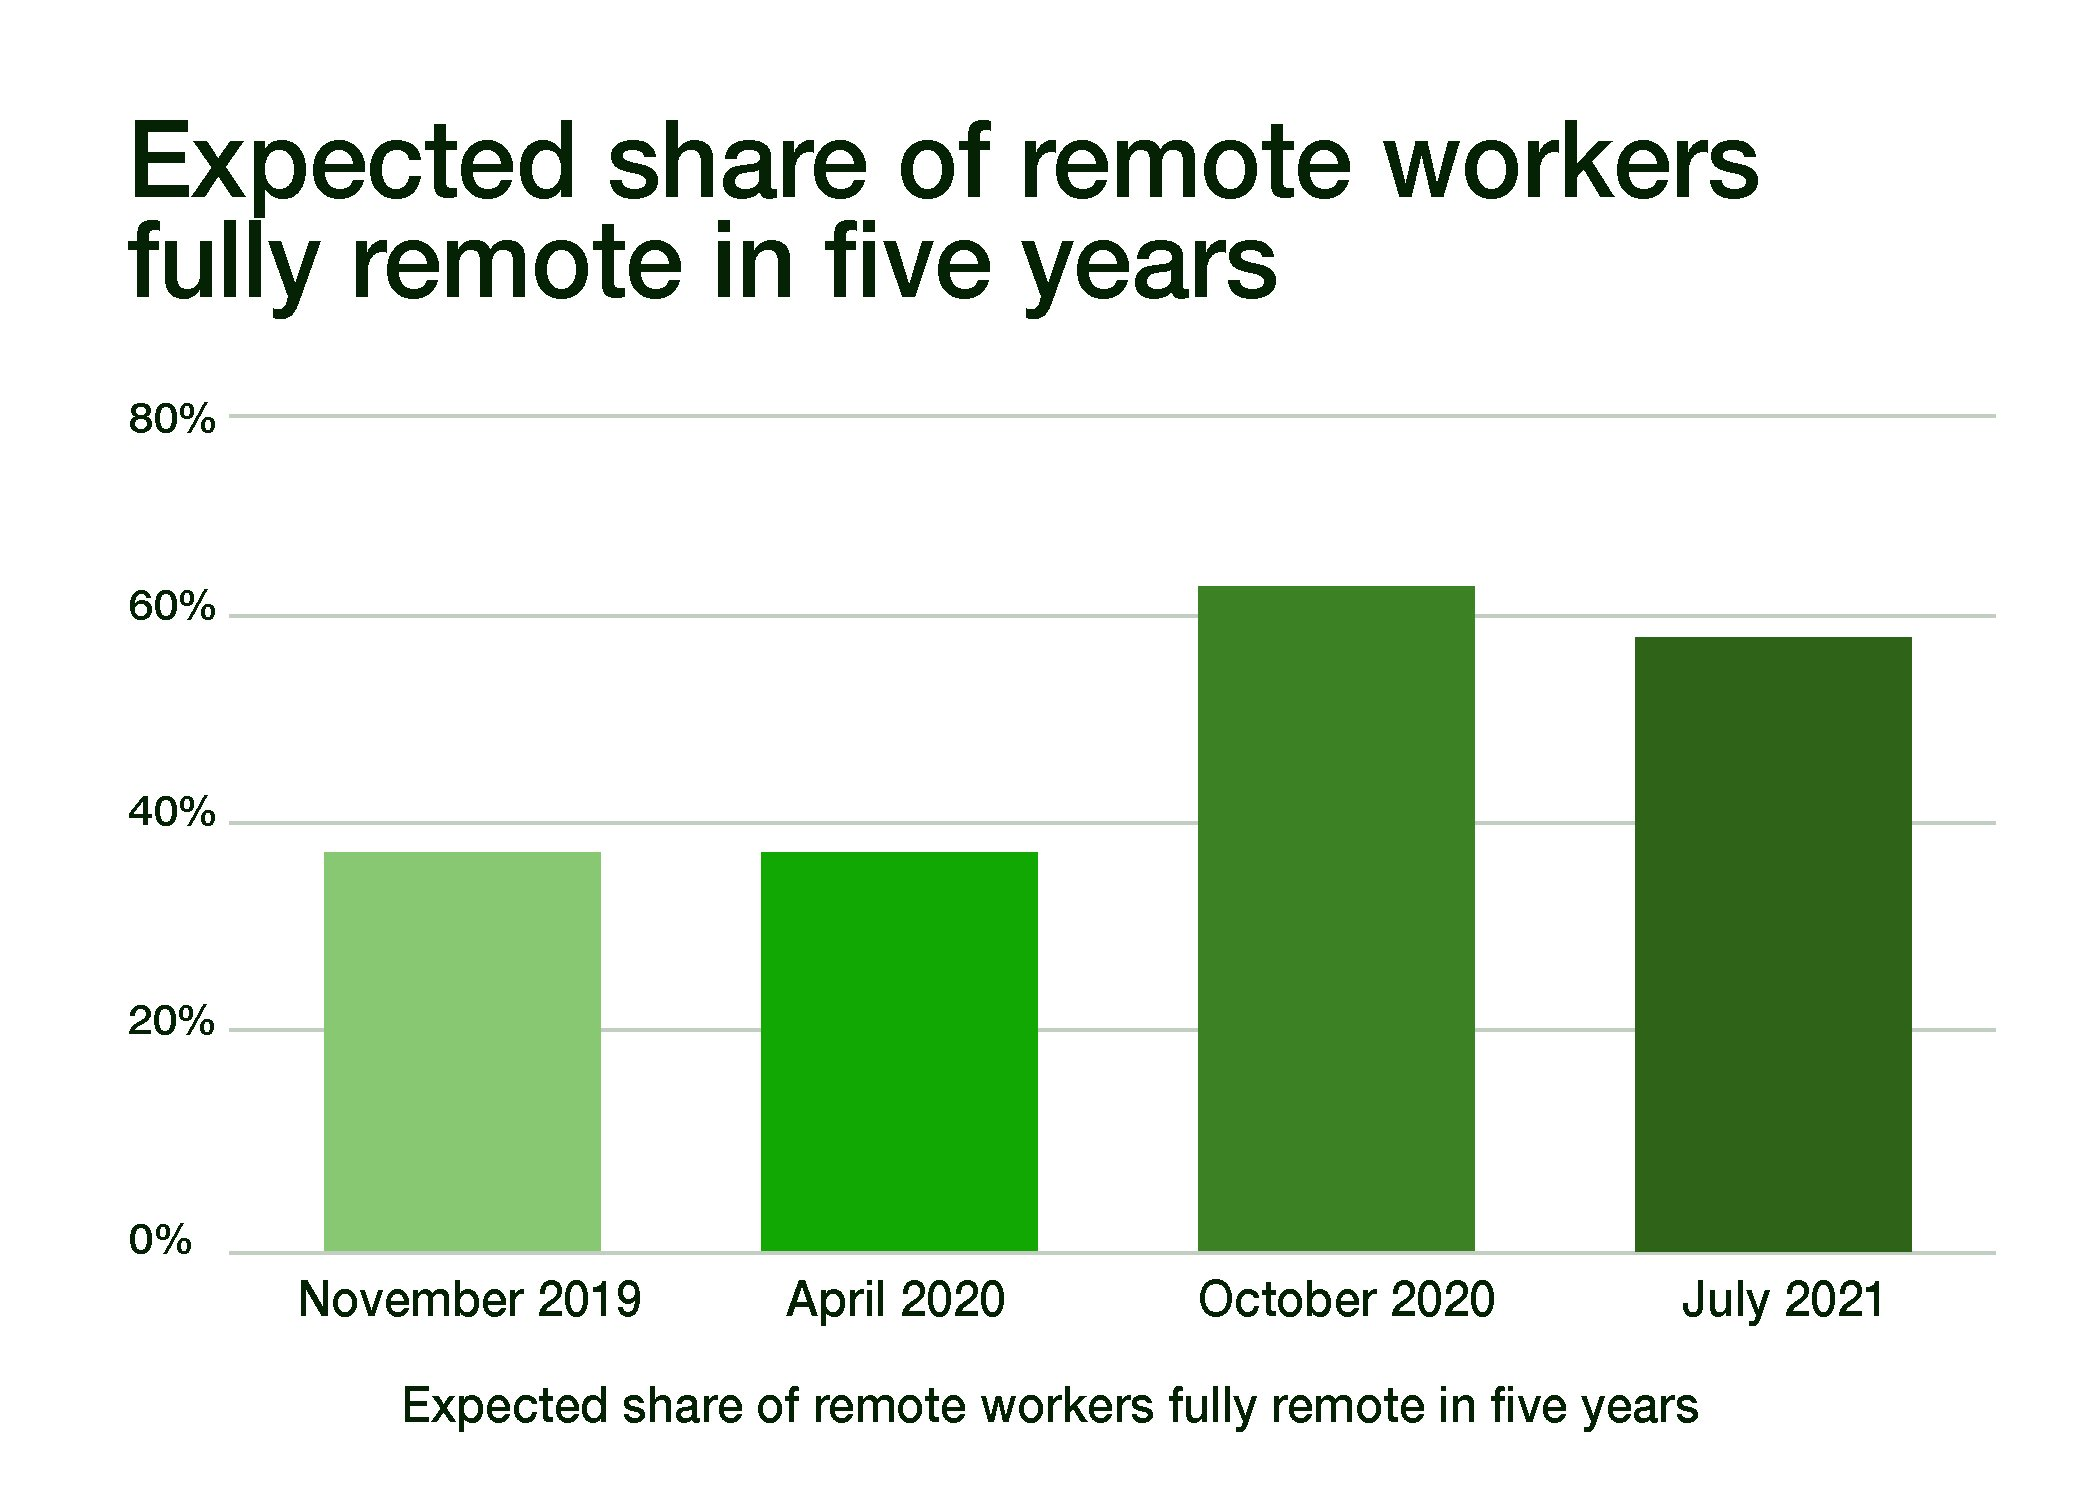 Expected share of remote workers fully remote in five years